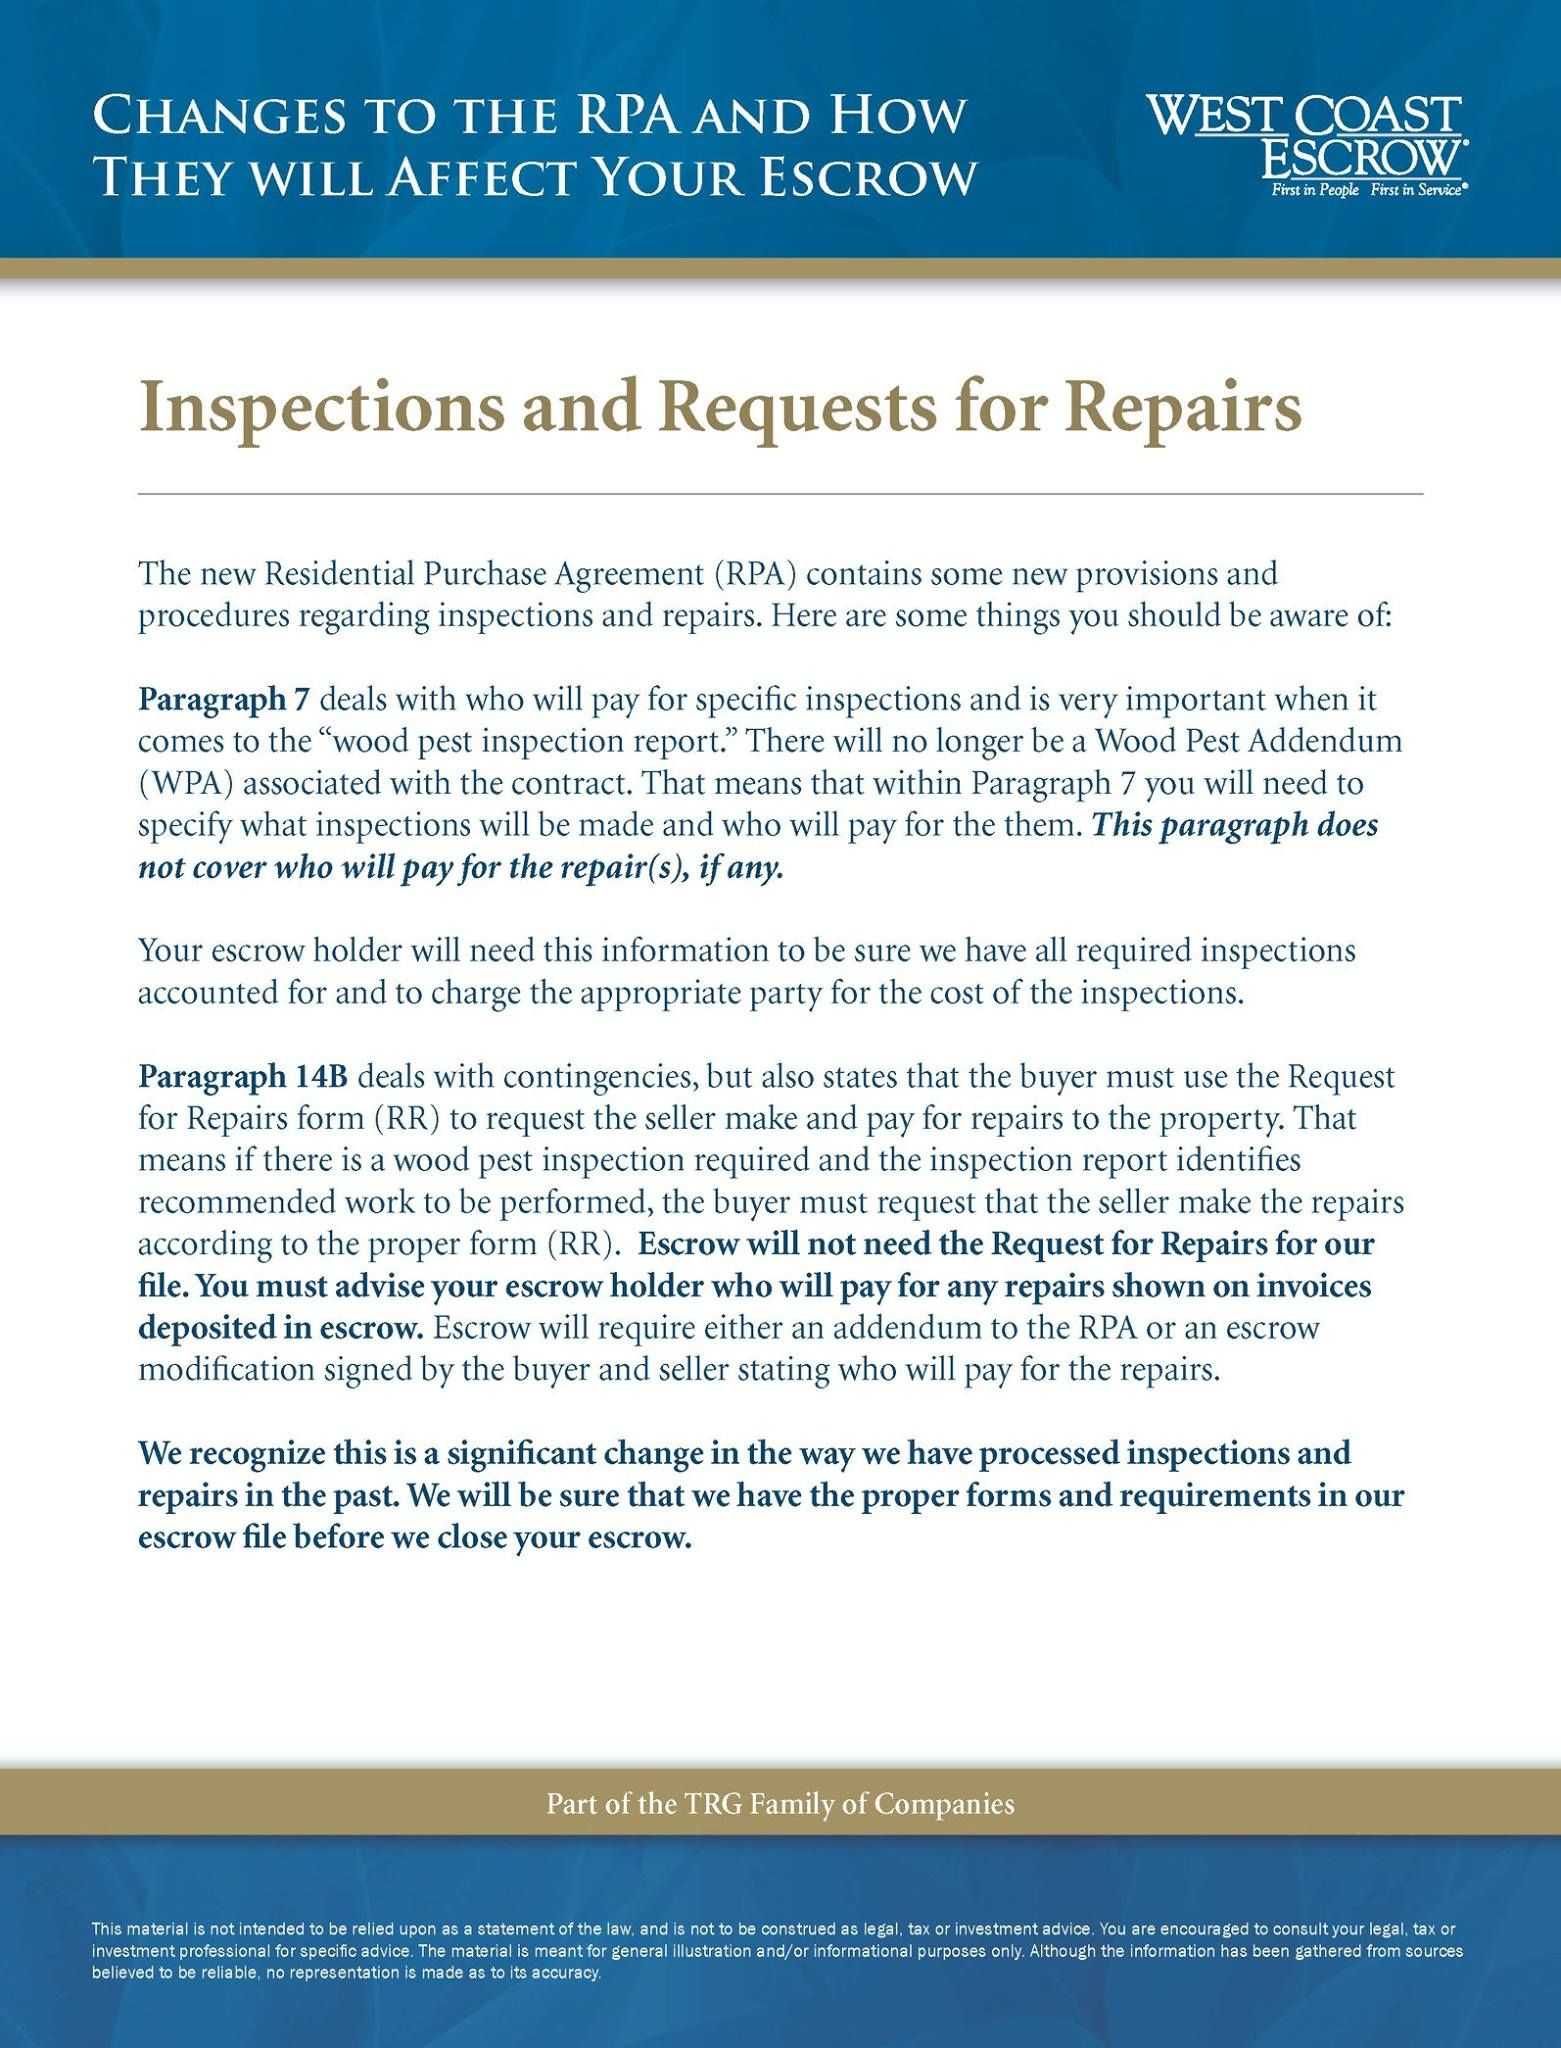 Informational Escrow Flyer Rpa Inspections And Requests For